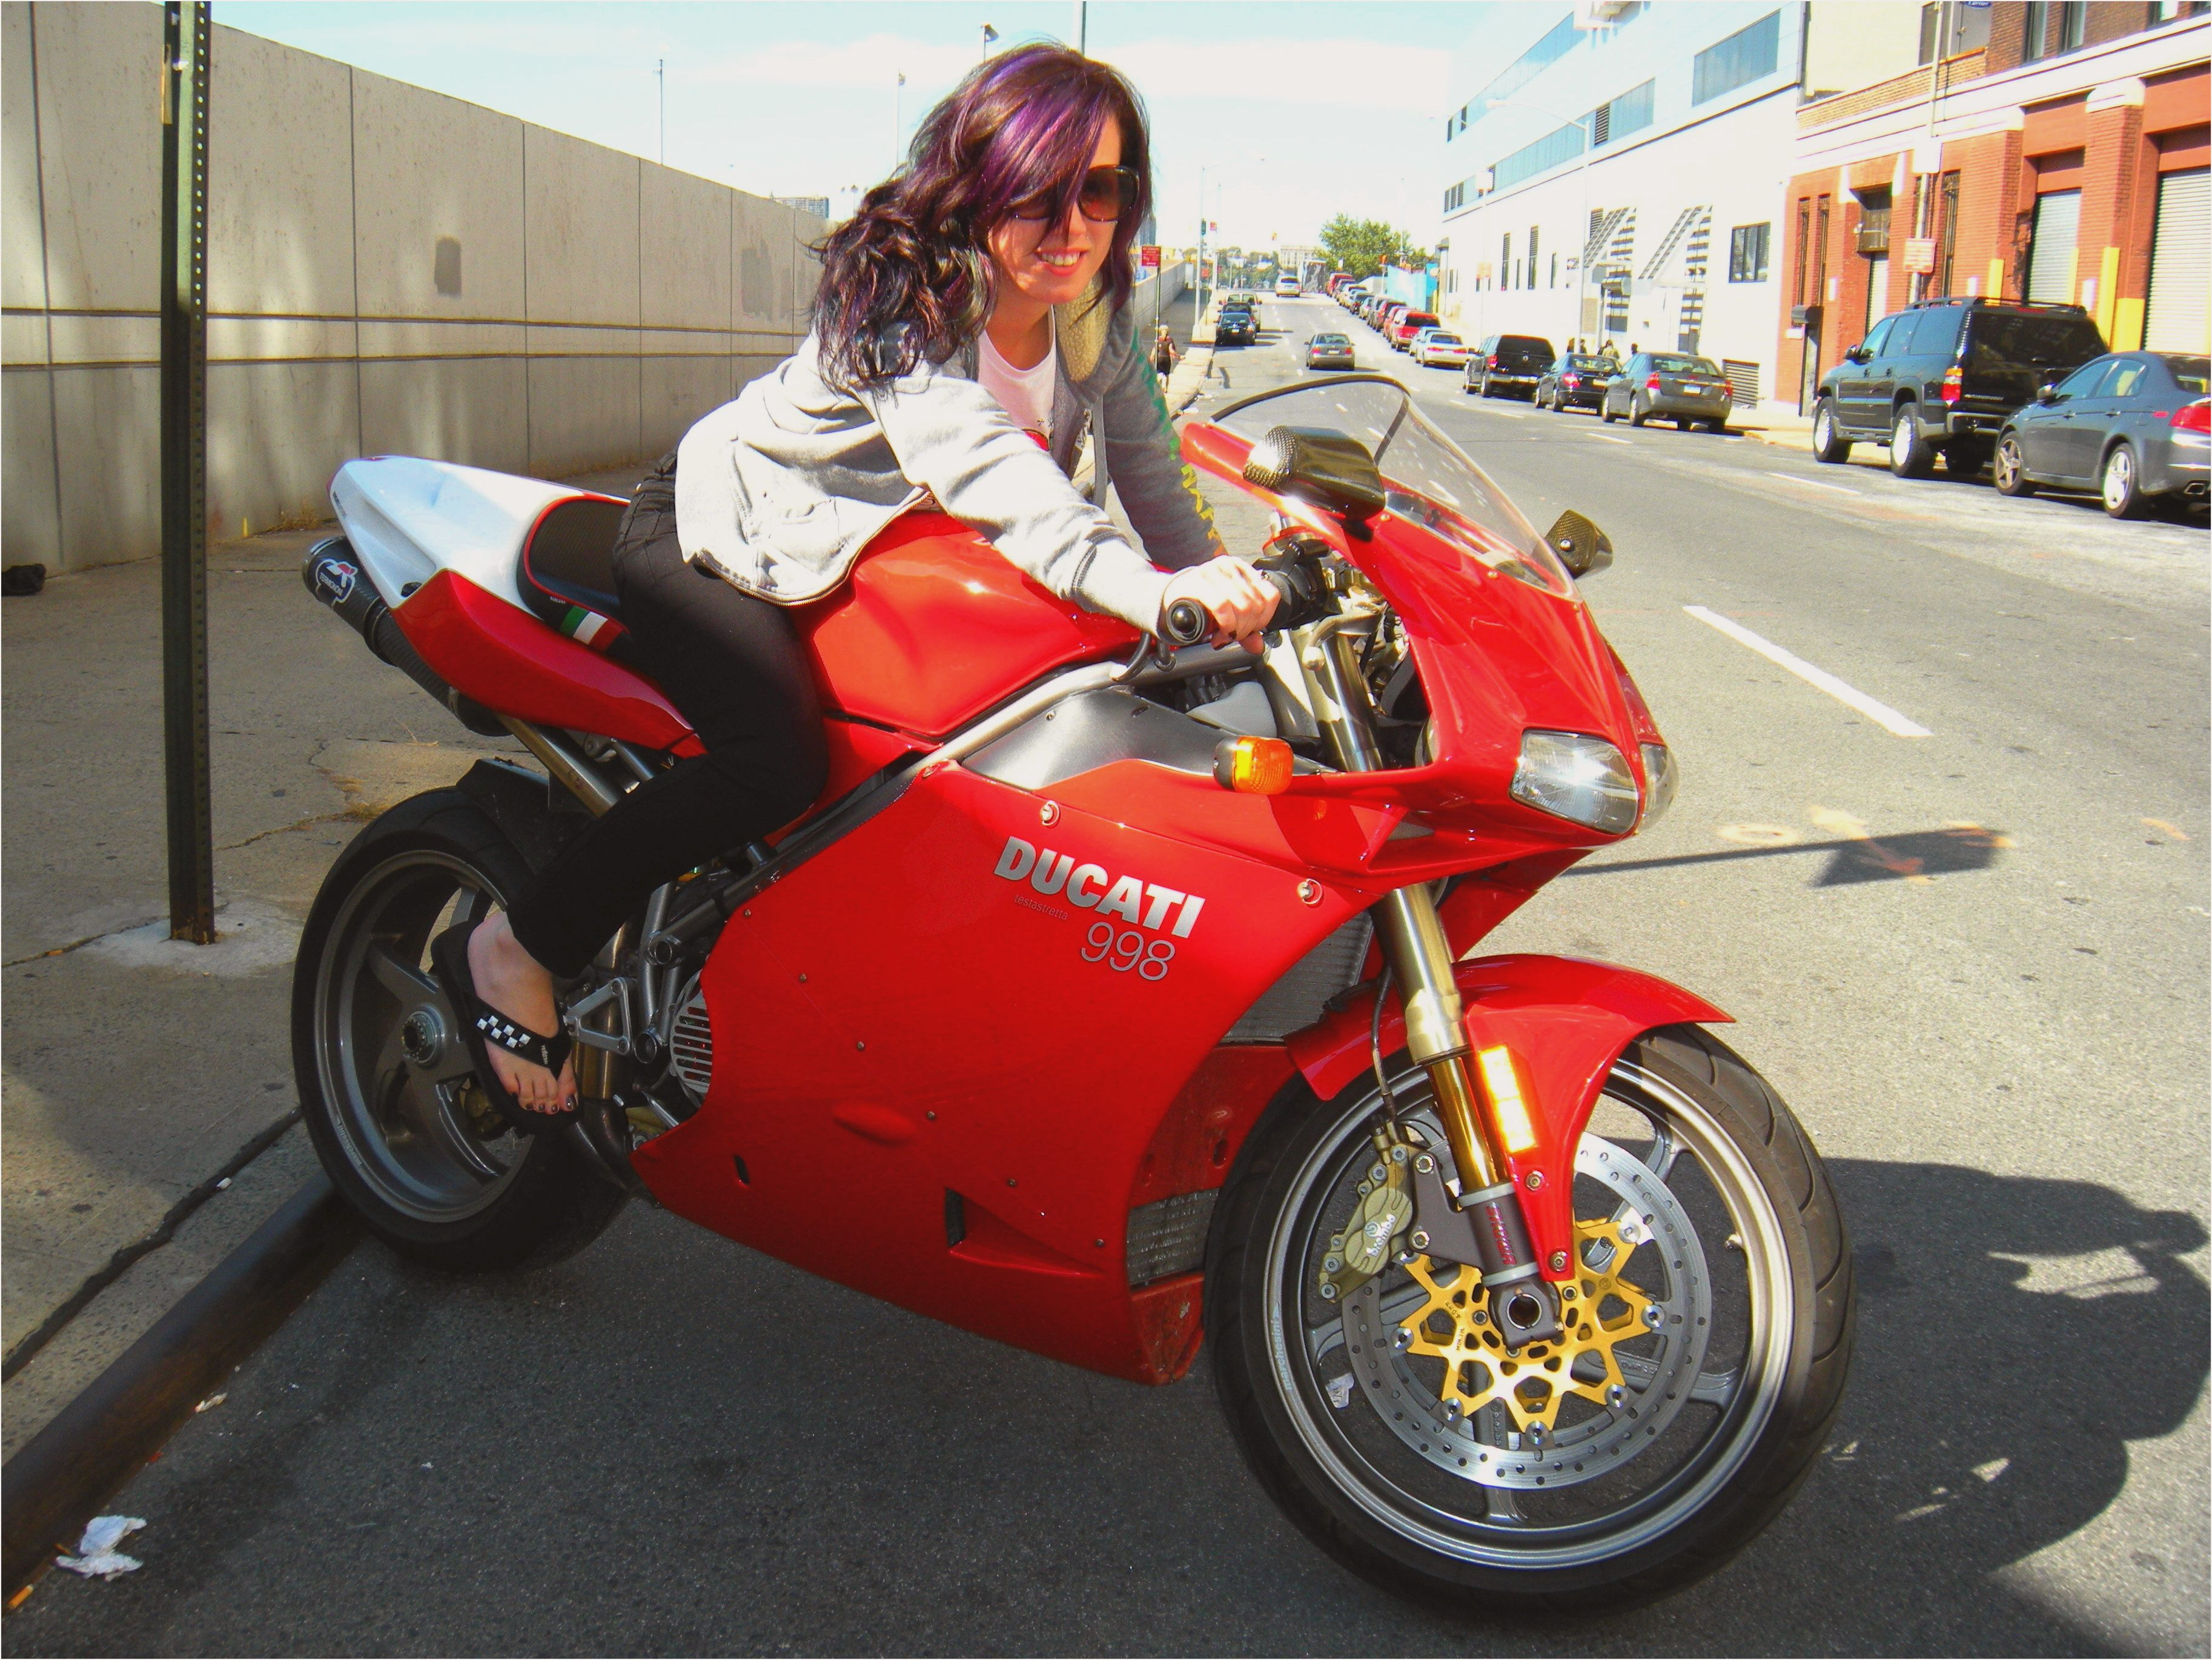 Ducati 998 2004 wallpapers #12001